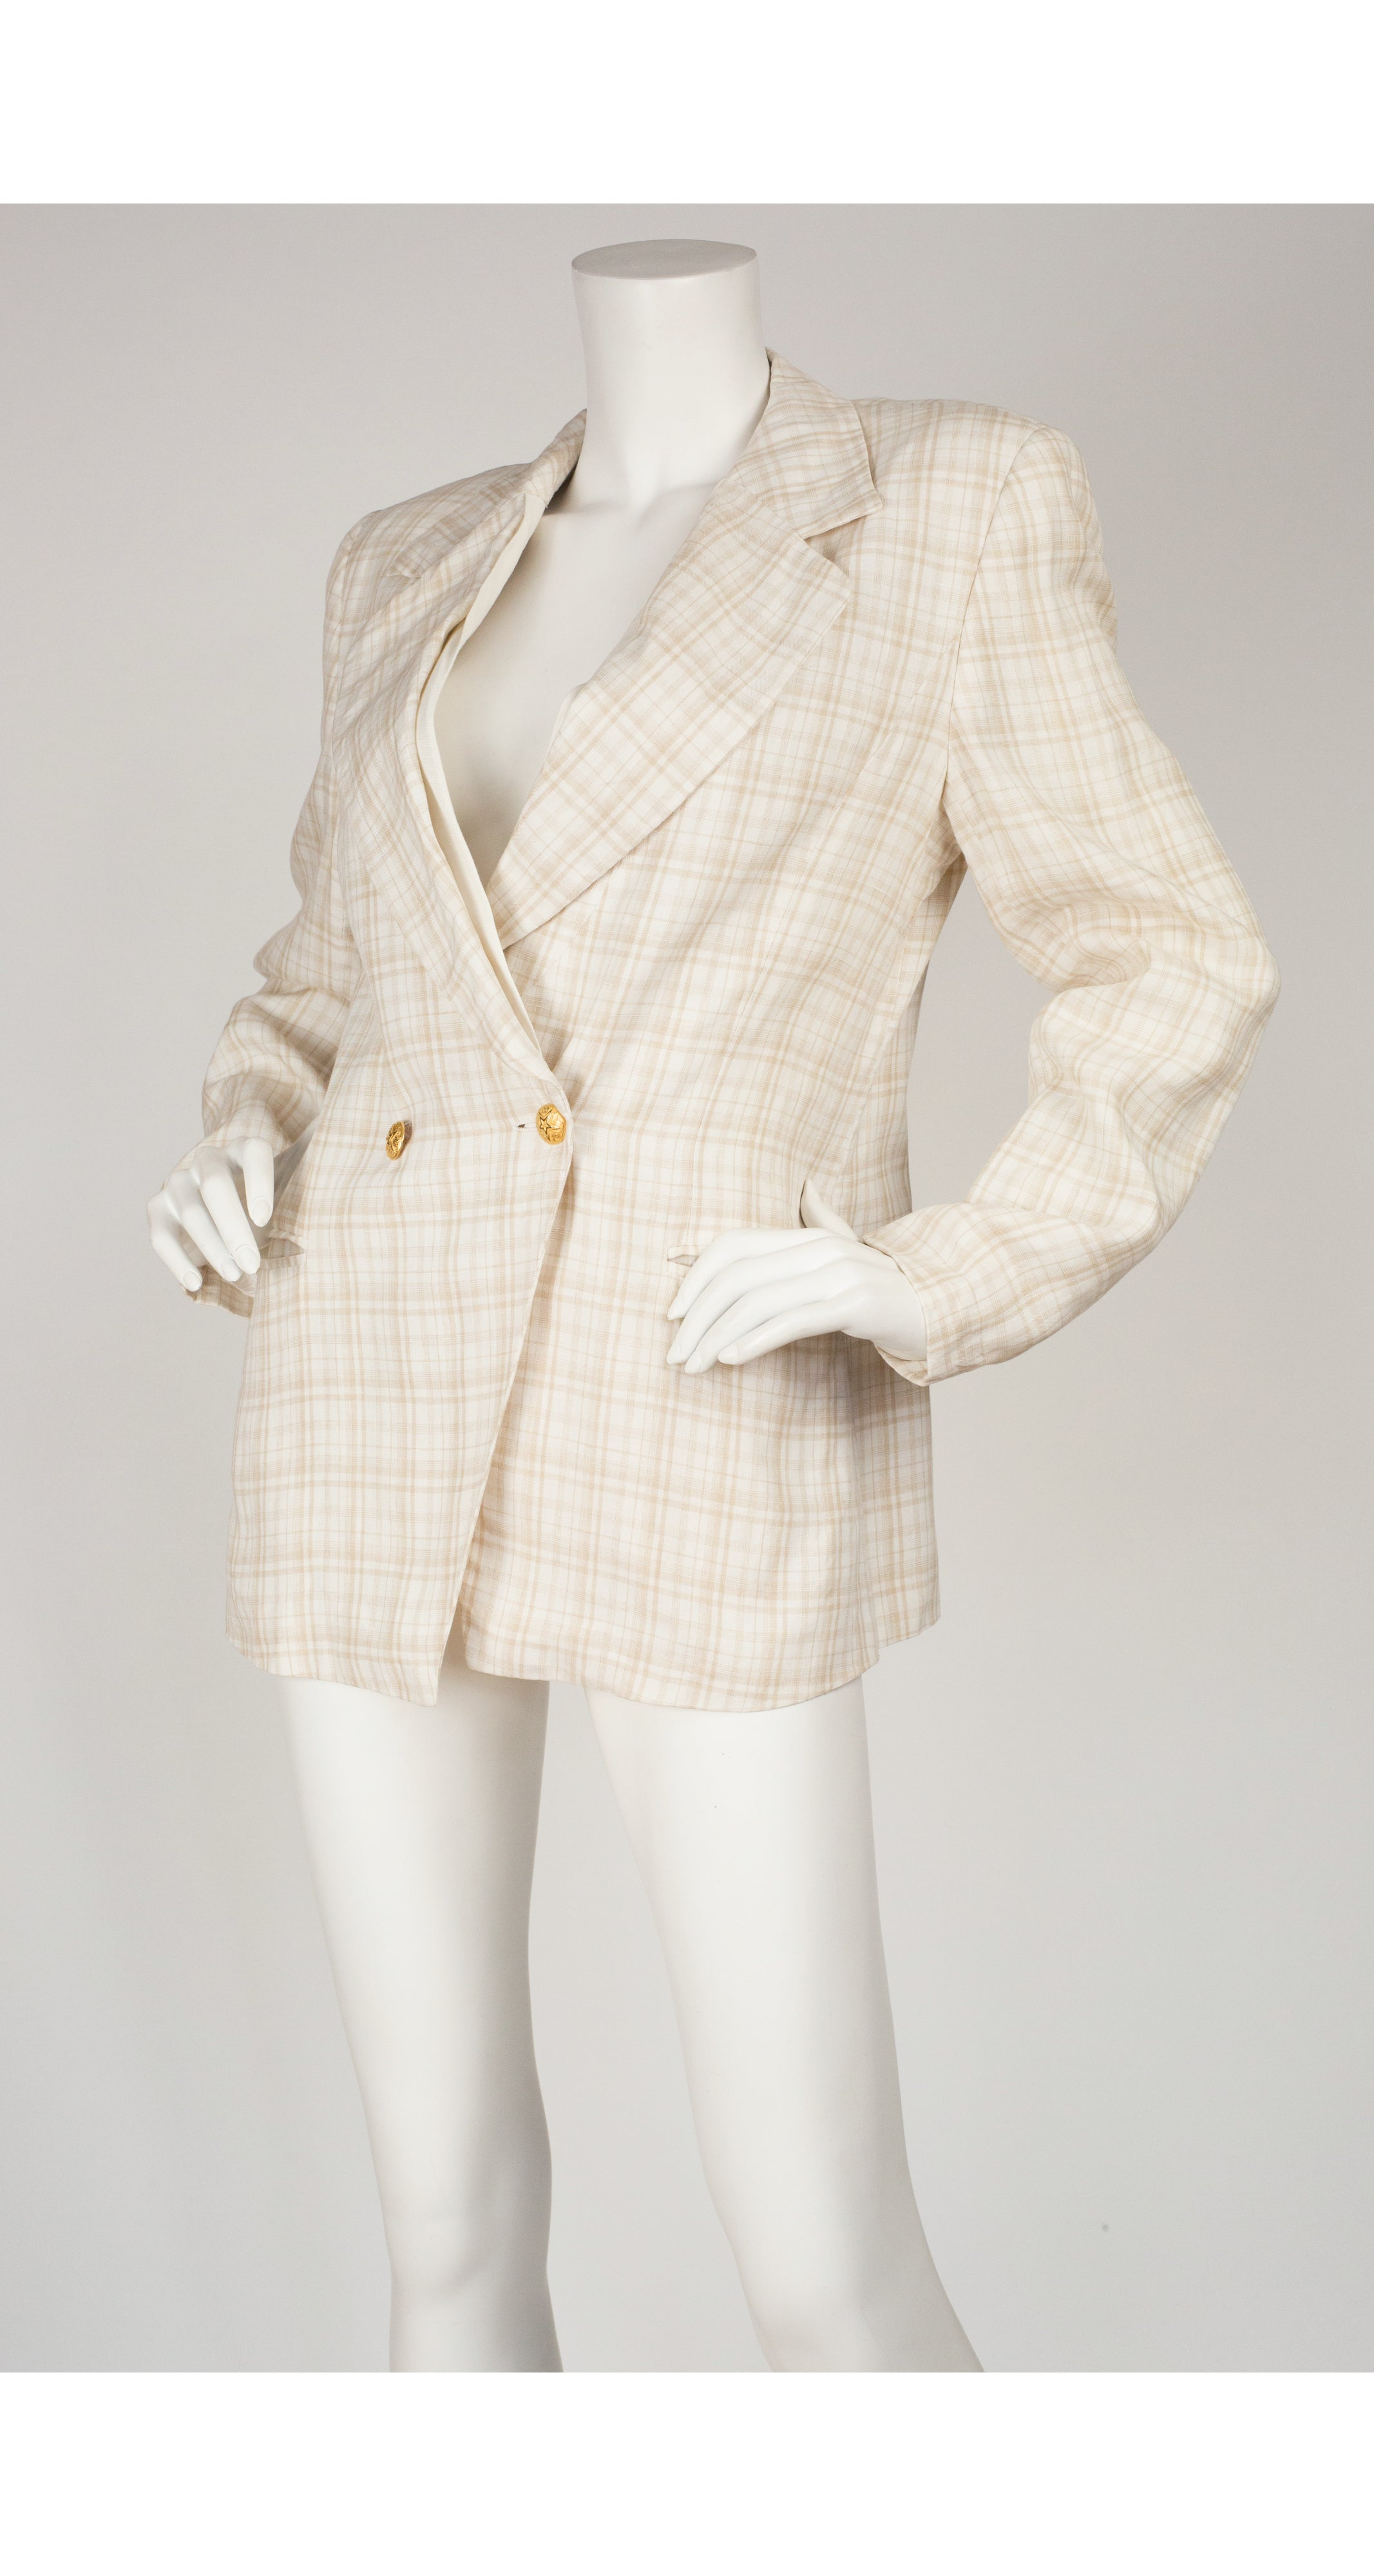 1990s Beige & White Plaid Linen Double-Breasted Blazer